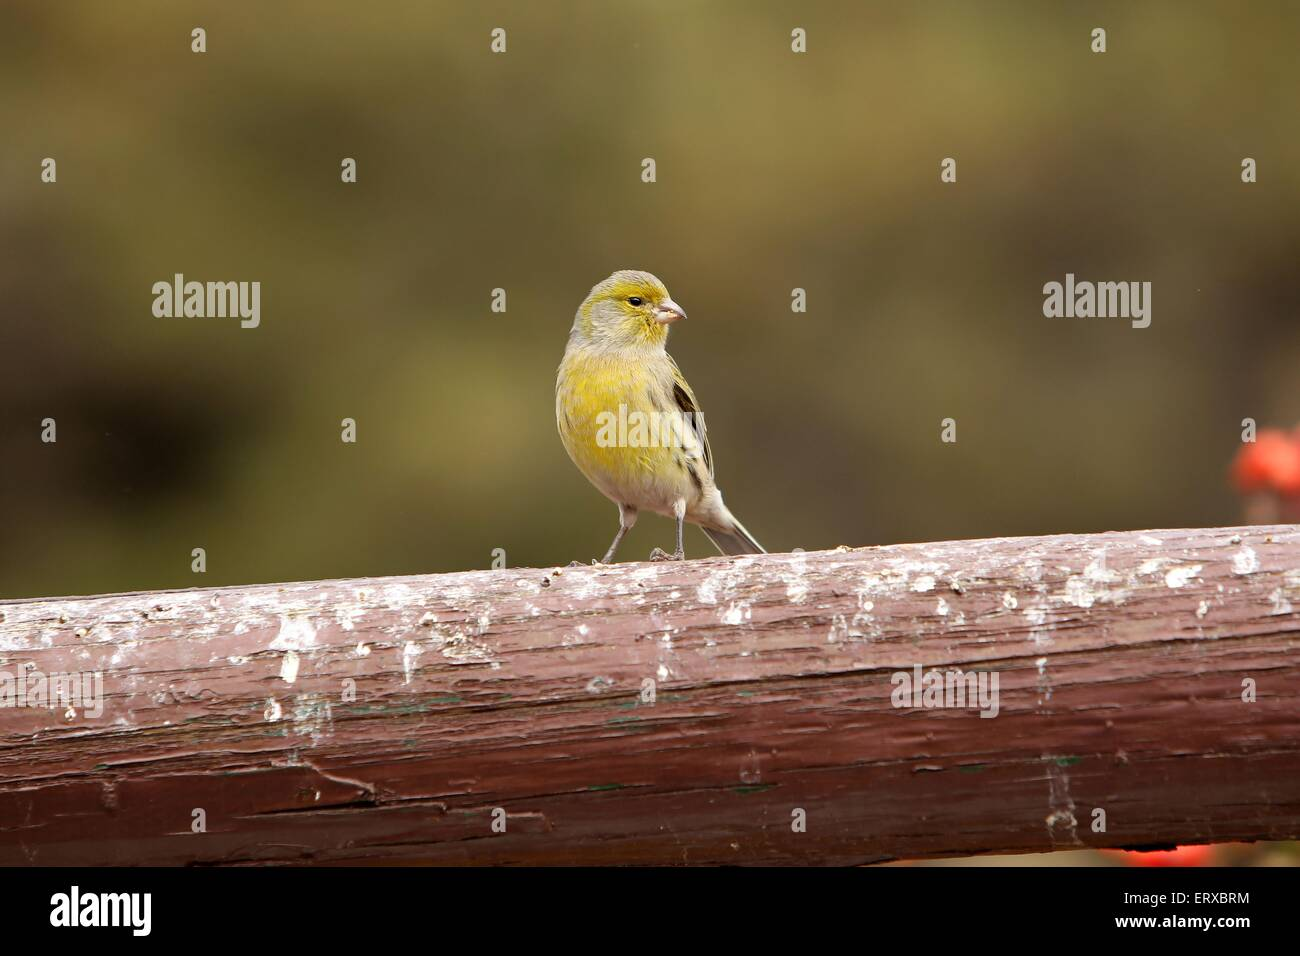 common canary - Stock Image